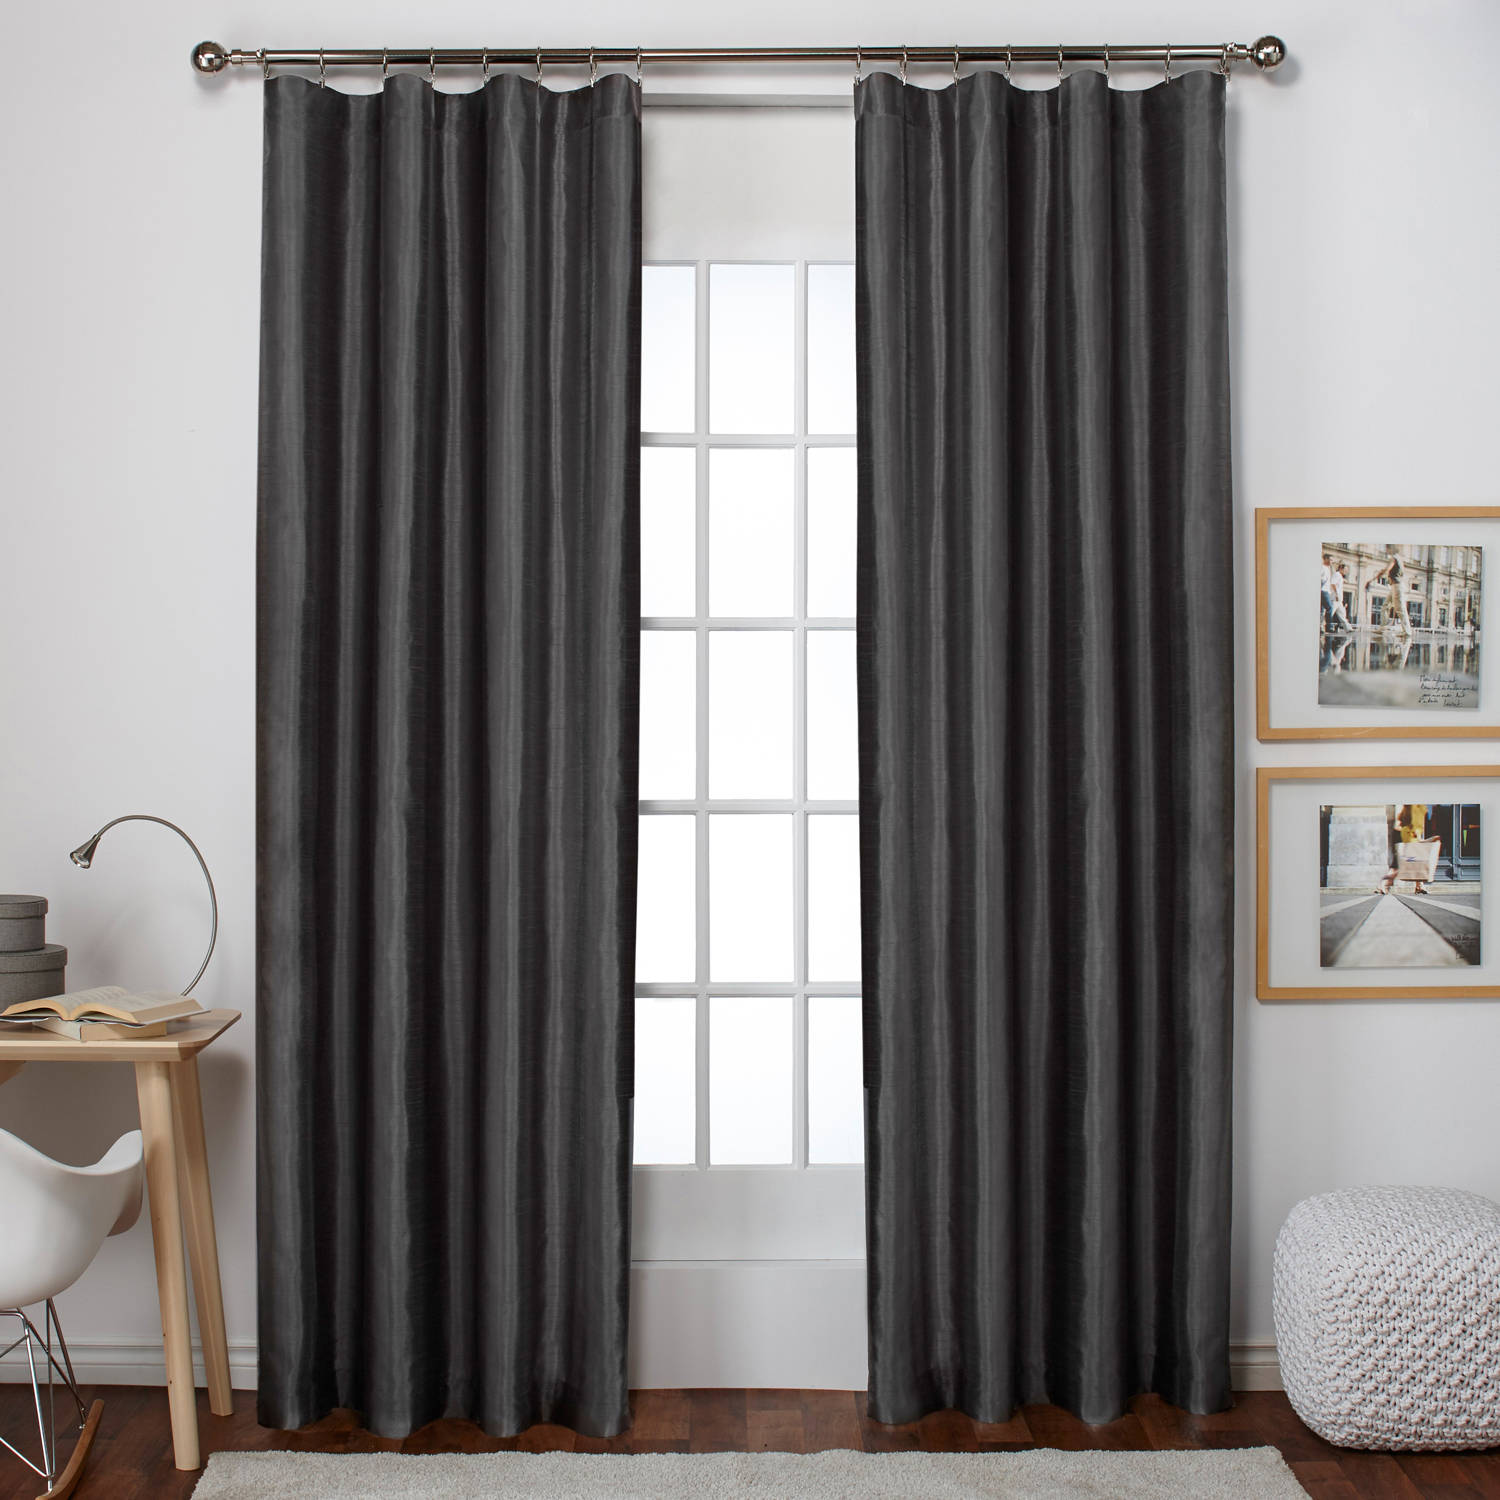 Exclusive Home Bolero Faux Silk Window Curtain Panel Pair with Clip Ring and Rod Pocket Top